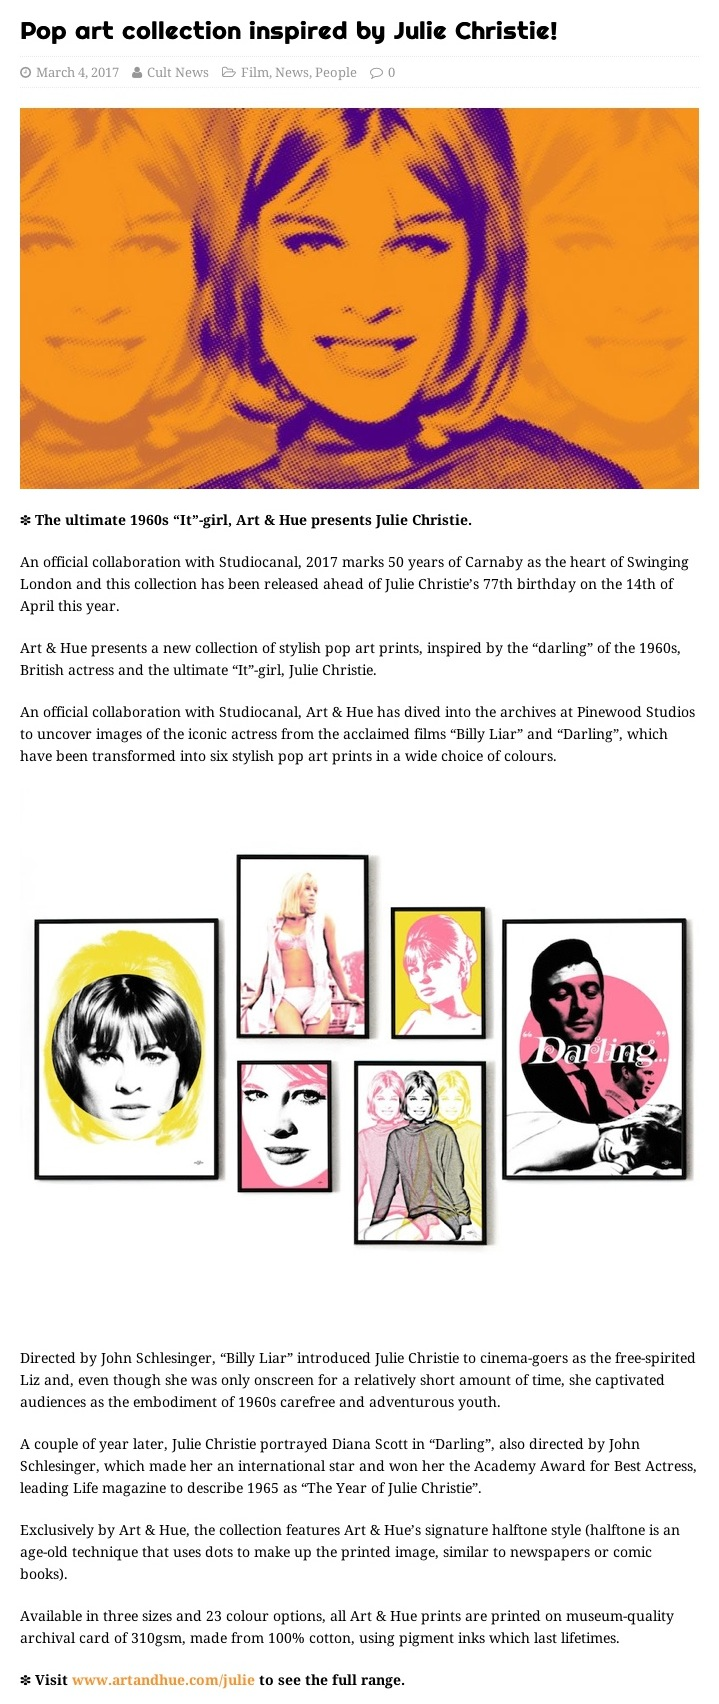 Pop art collection inspired by Julie Christie! – We Are Cult